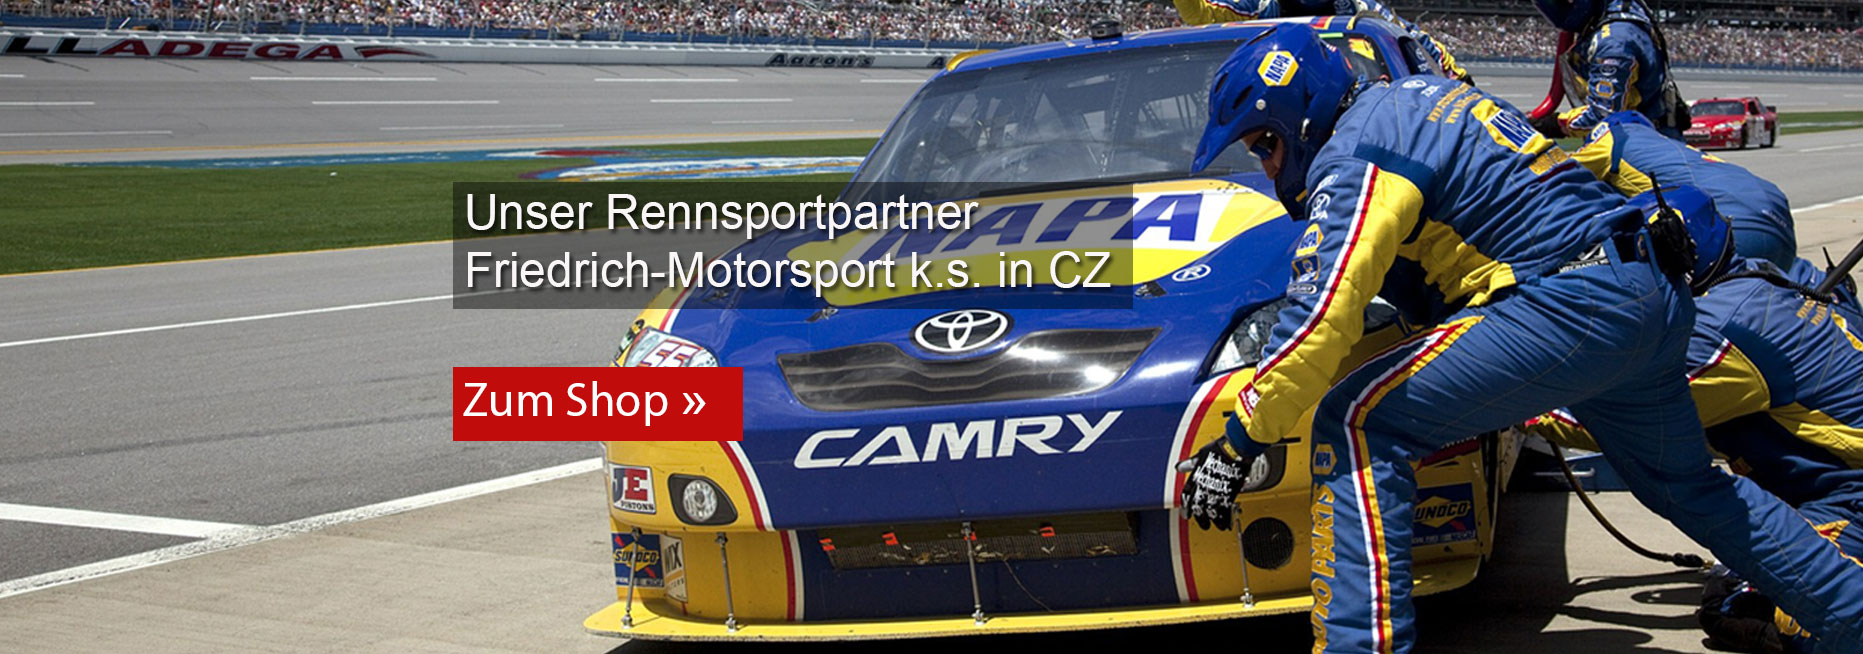 rennsportpartner_neu2